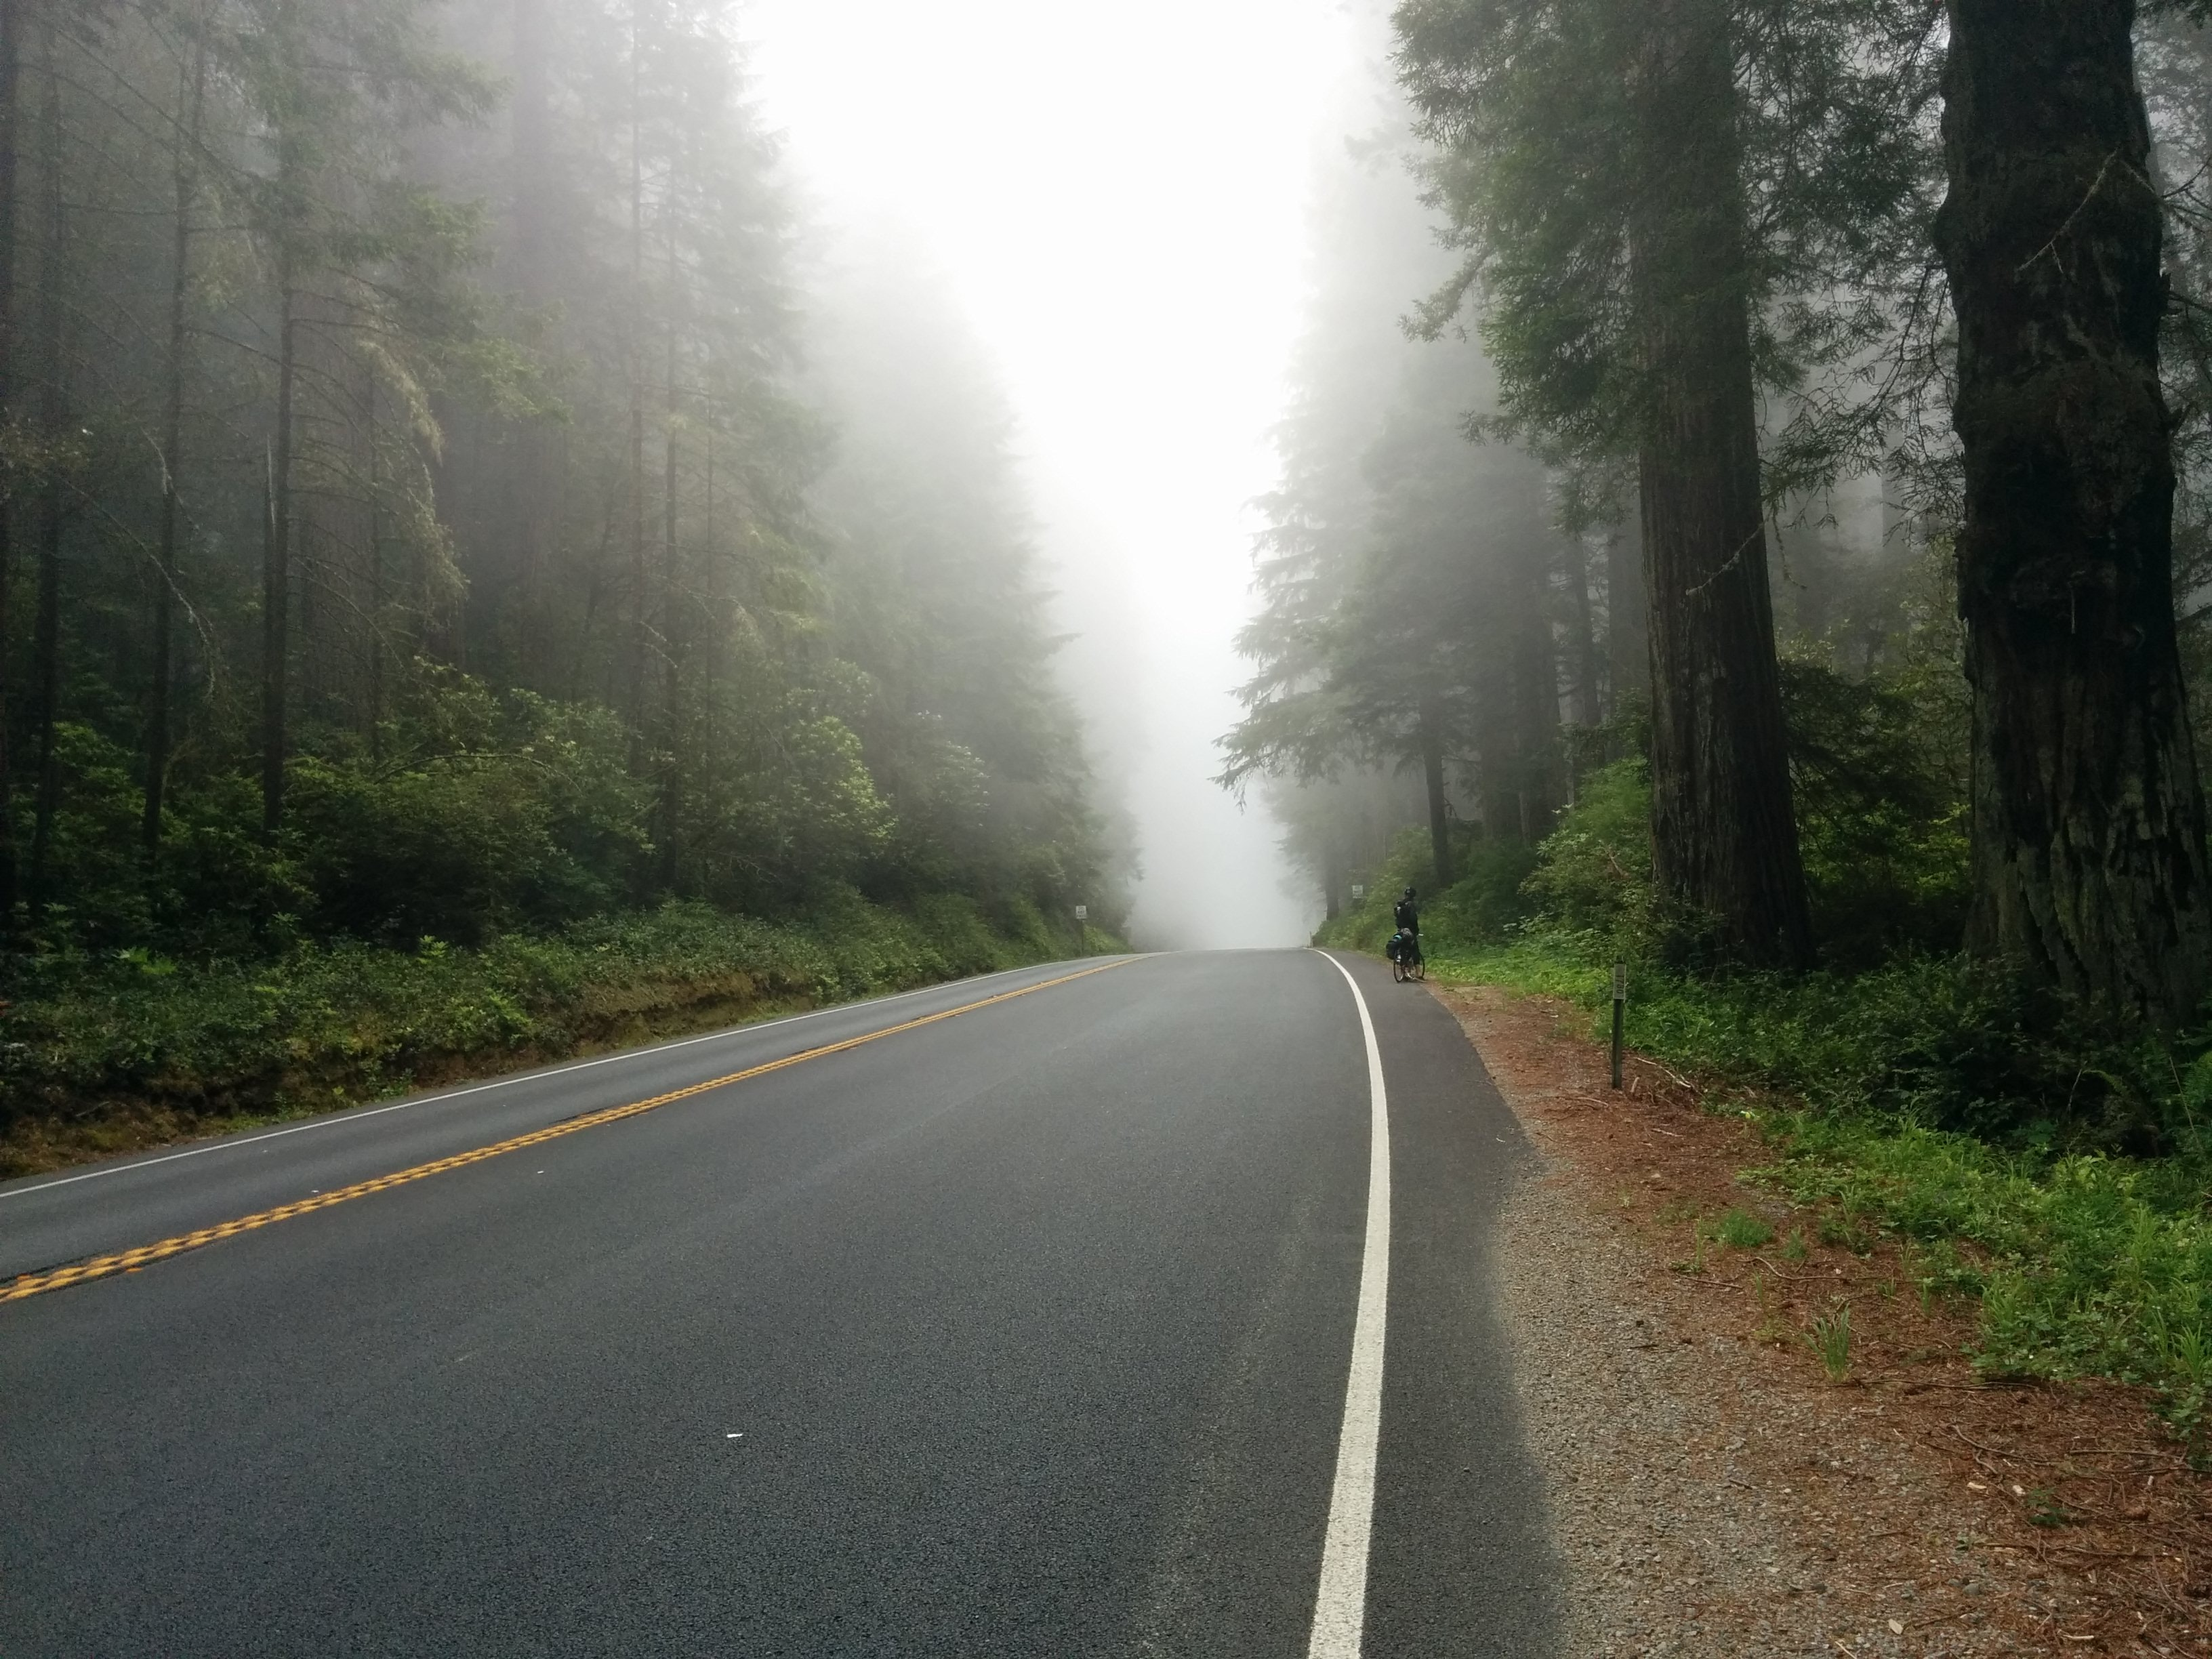 foggy road near forest